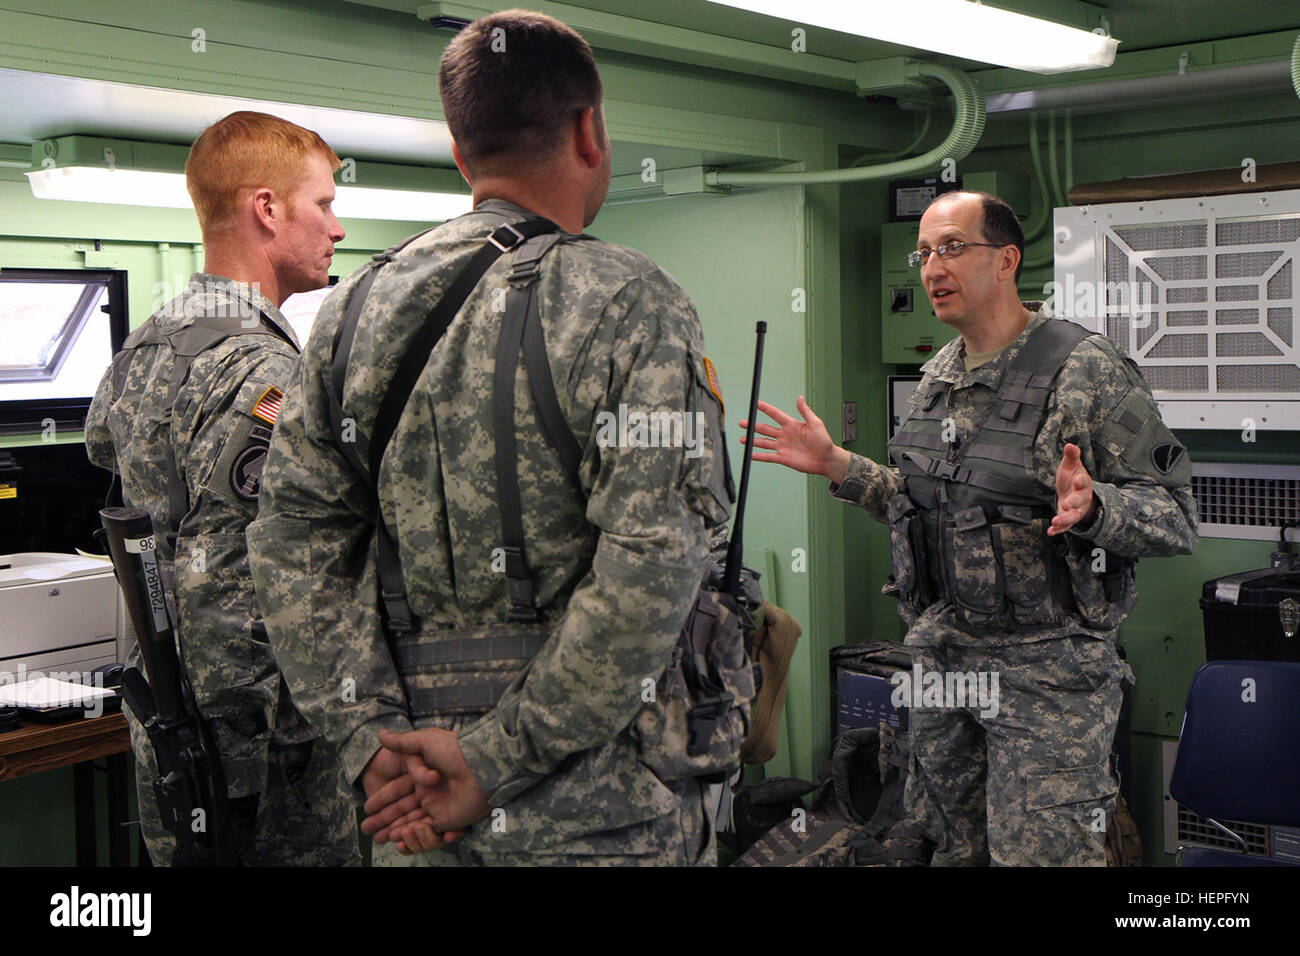 Gary Port Of The 78th Training Division Speaks With Soldiers 373rd Combat Sustainment Support Battalion CSSB During Warrior Exercise 78 13 01 On